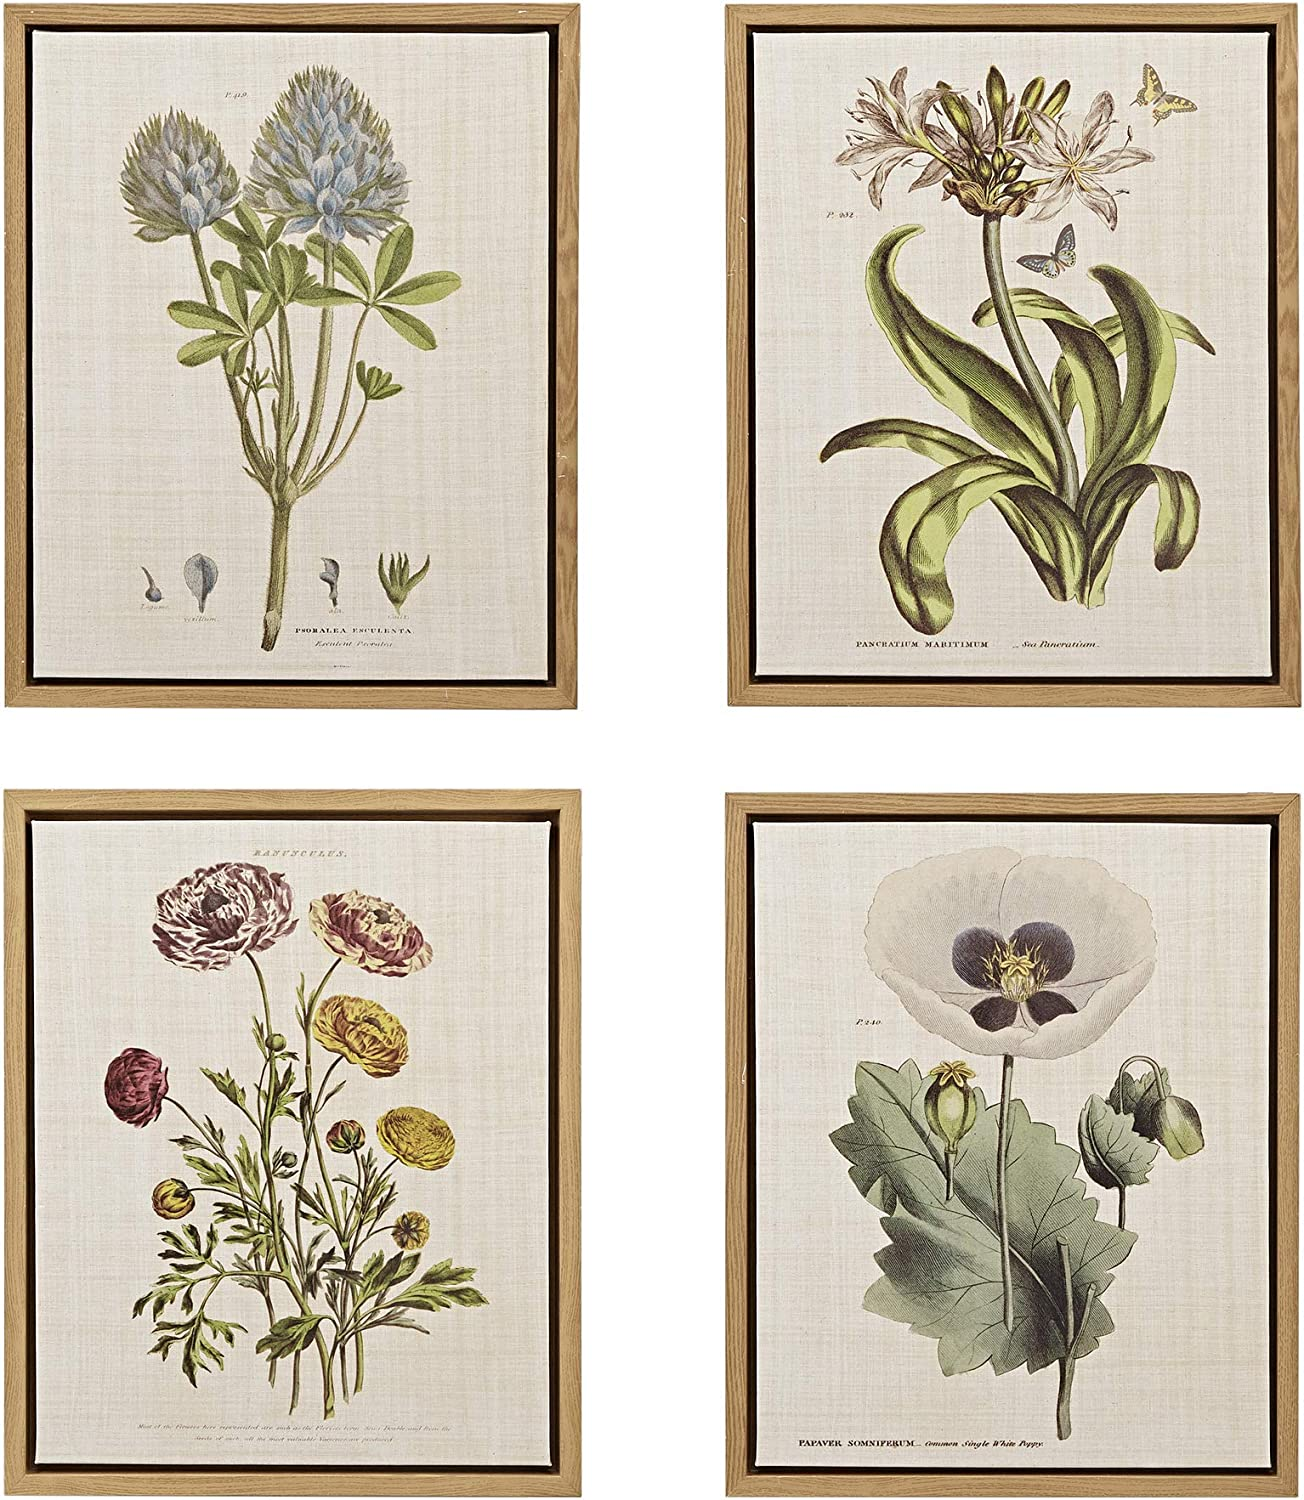 MARTHA STEWART Herbal Botany Wall Art Living Room Floral Linen Canvas Home Accent Country Lifestyle Bathroom Decoration, Ready to Hang Poster Painting for Bedroom, 17.84